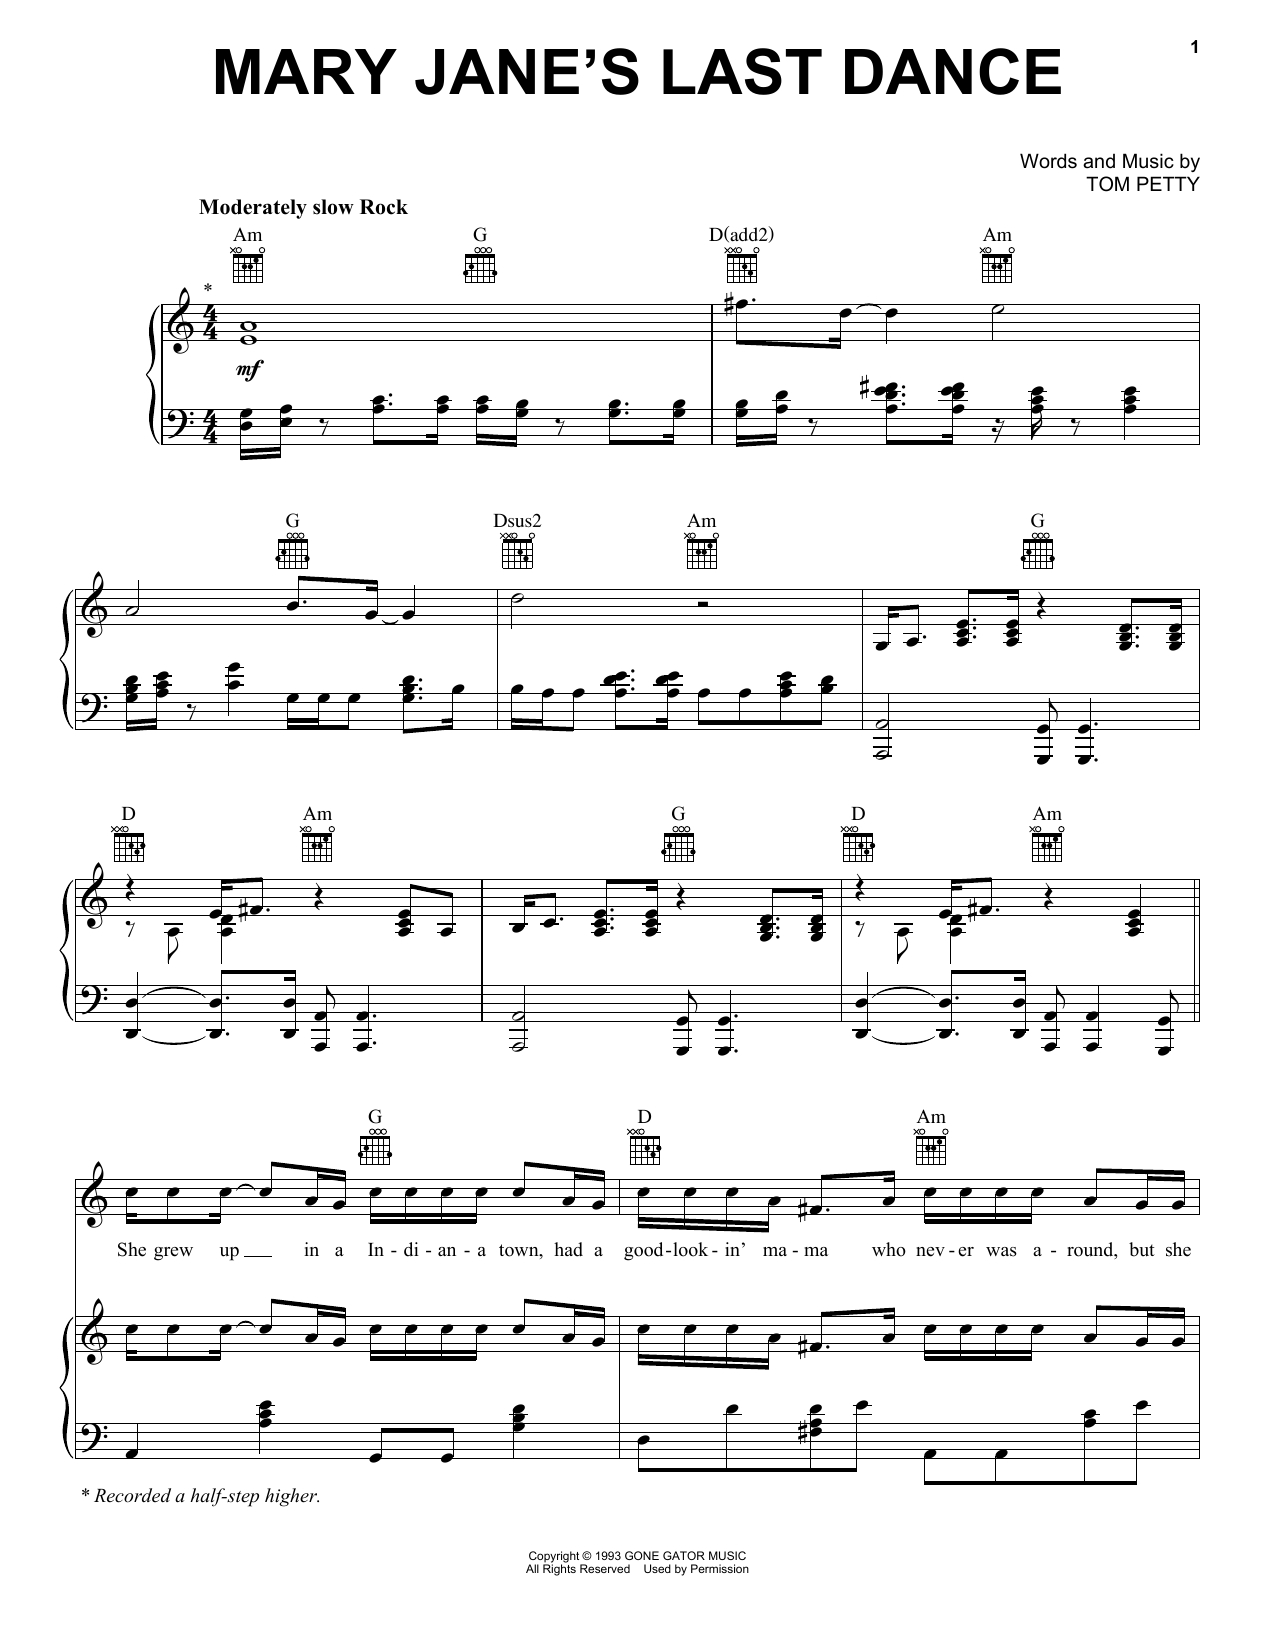 Last Dance With Mary Jane Chords Tom Petty And The Heartbreakers Mary Janes Last Dance Sheet Music Notes Chords Download Printable Guitar Tab Single Guitar Sku 58845